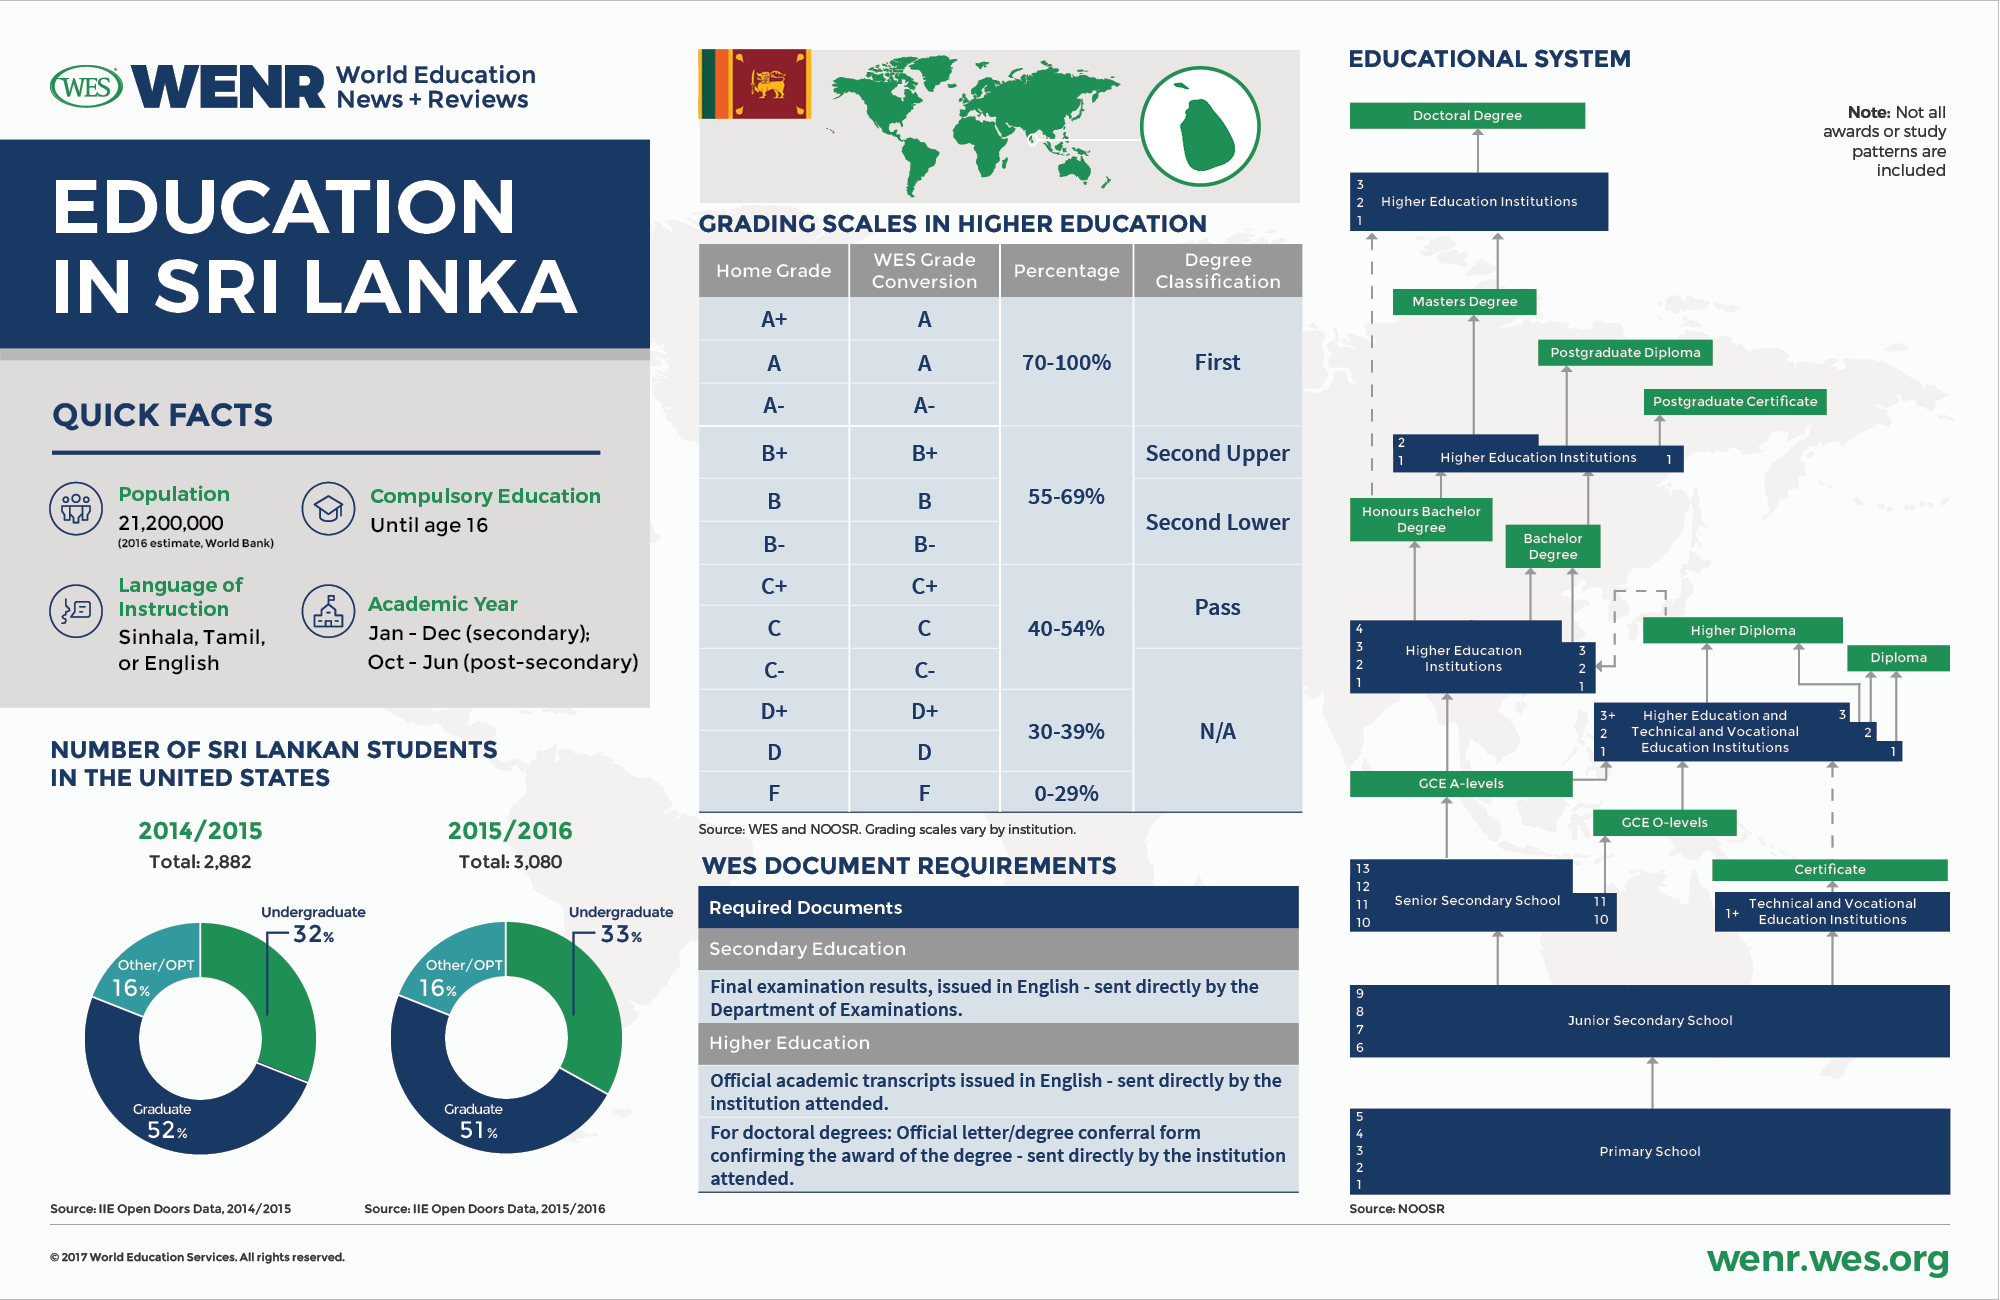 education in sri lanka current trends and qualifications  structure of the education system of sri lanka this article replaces an earlier version by nick clark and has been updated to reflect the most current